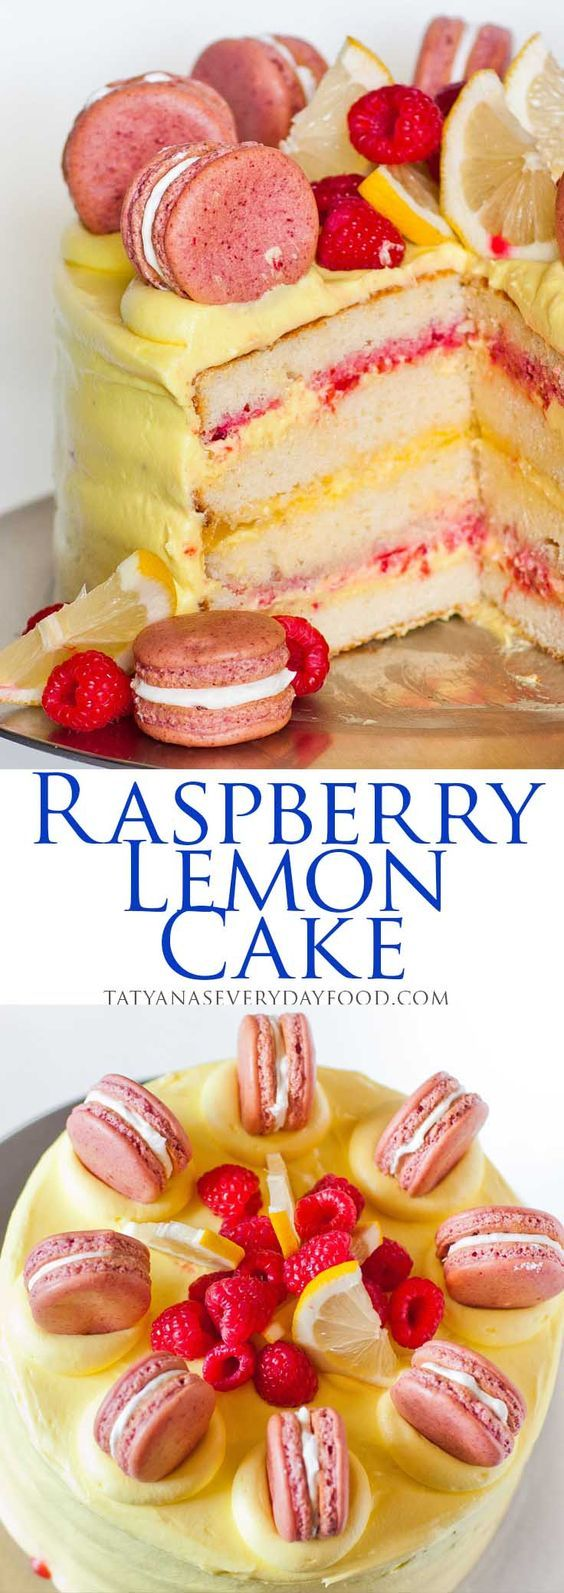 White chocolate cake layers are filled with fresh raspberries and lemon curd and frosted in a tart, lemon butter cream!